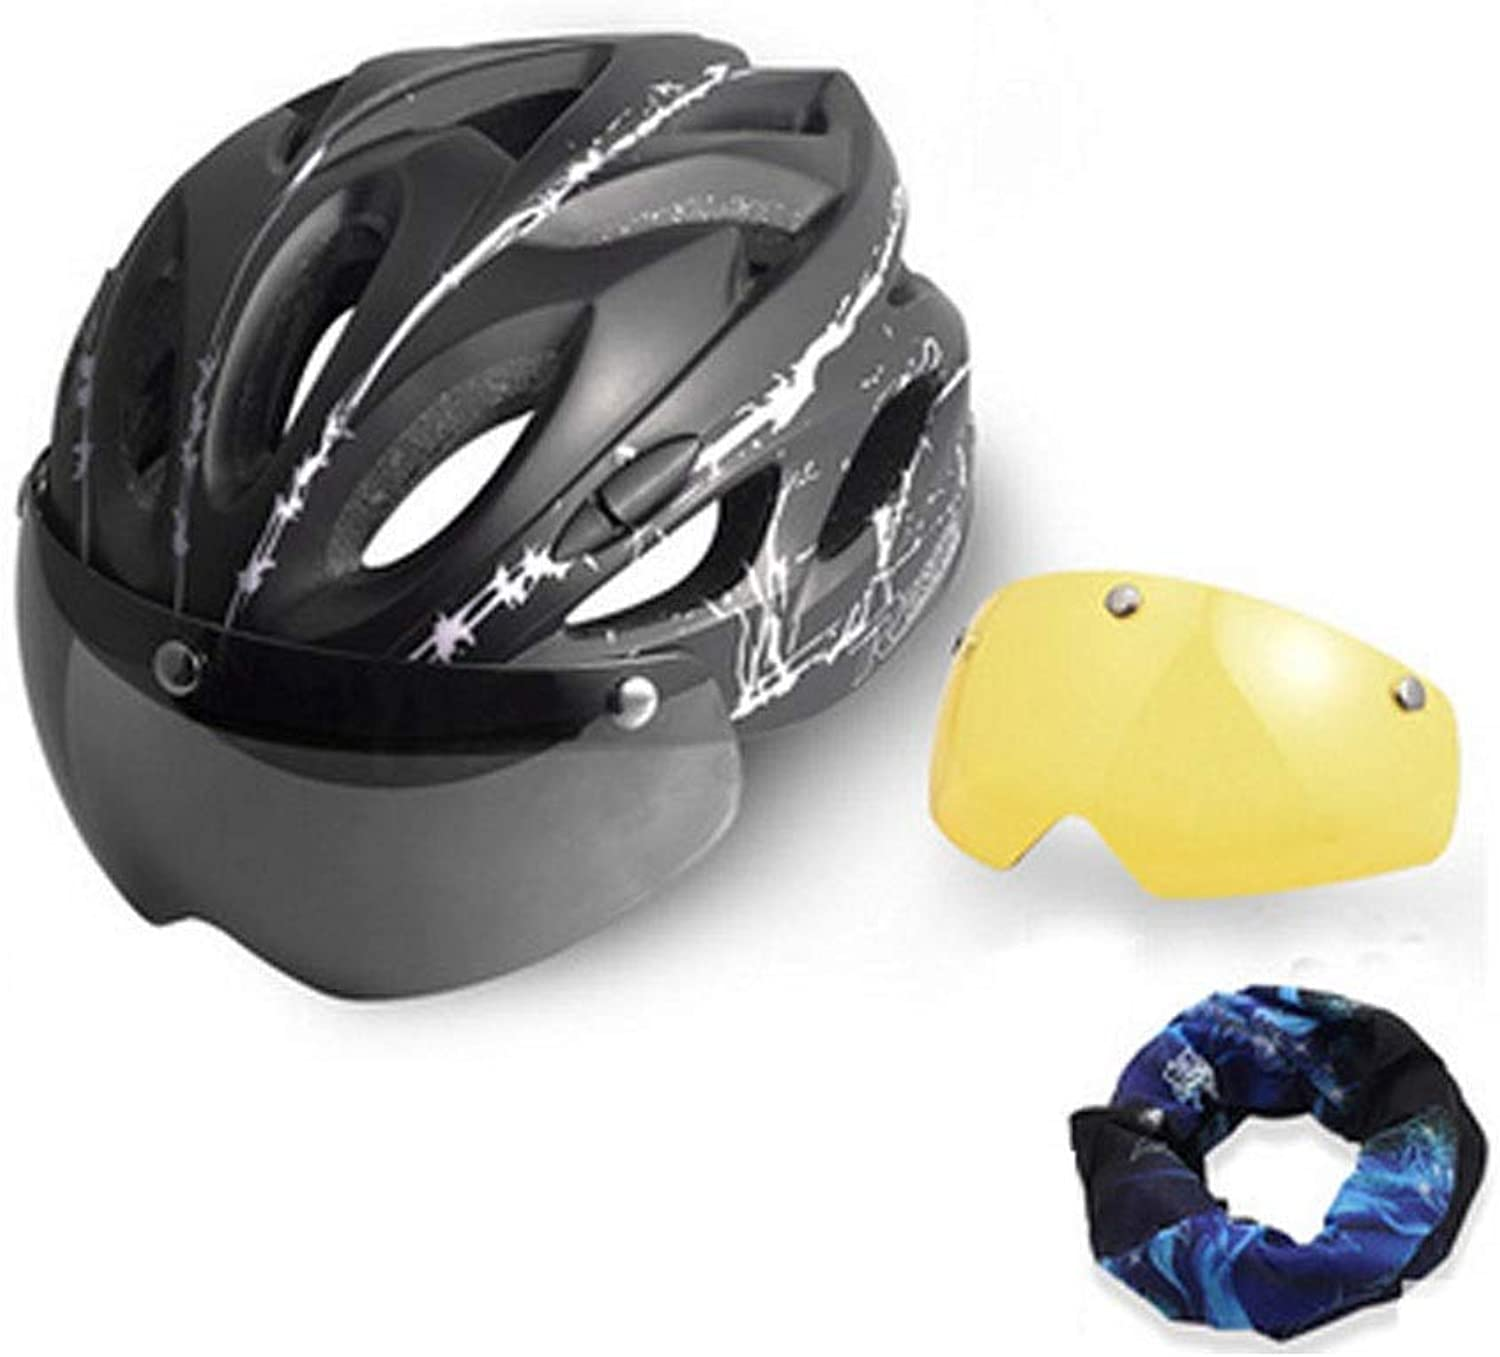 Hengxiang Airflow Bike Helmet, with inMold Reinforcement Skeleton, Added Predection, Suitable for 5762cm Head Circumference, Gift Night Vision Lenses, Headscarf